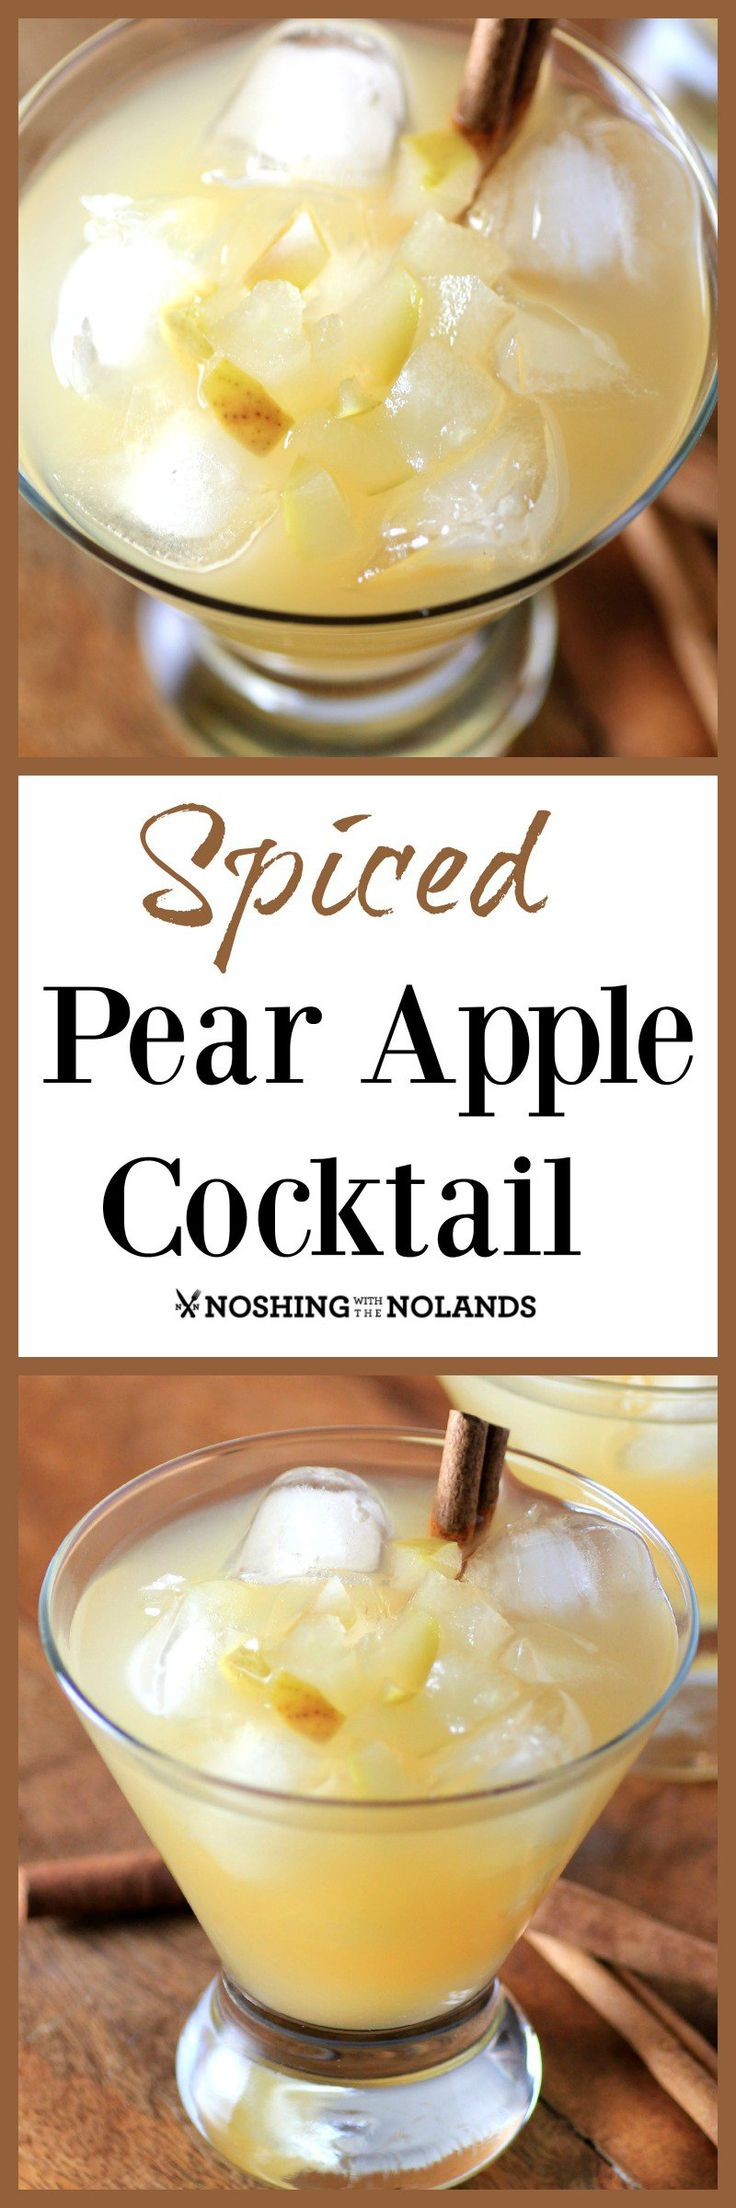 Spiced Pear Apple Cocktail by Noshing With The Nolands - This cool and refreshing fall libation is a phenomenal addition to your holiday season!